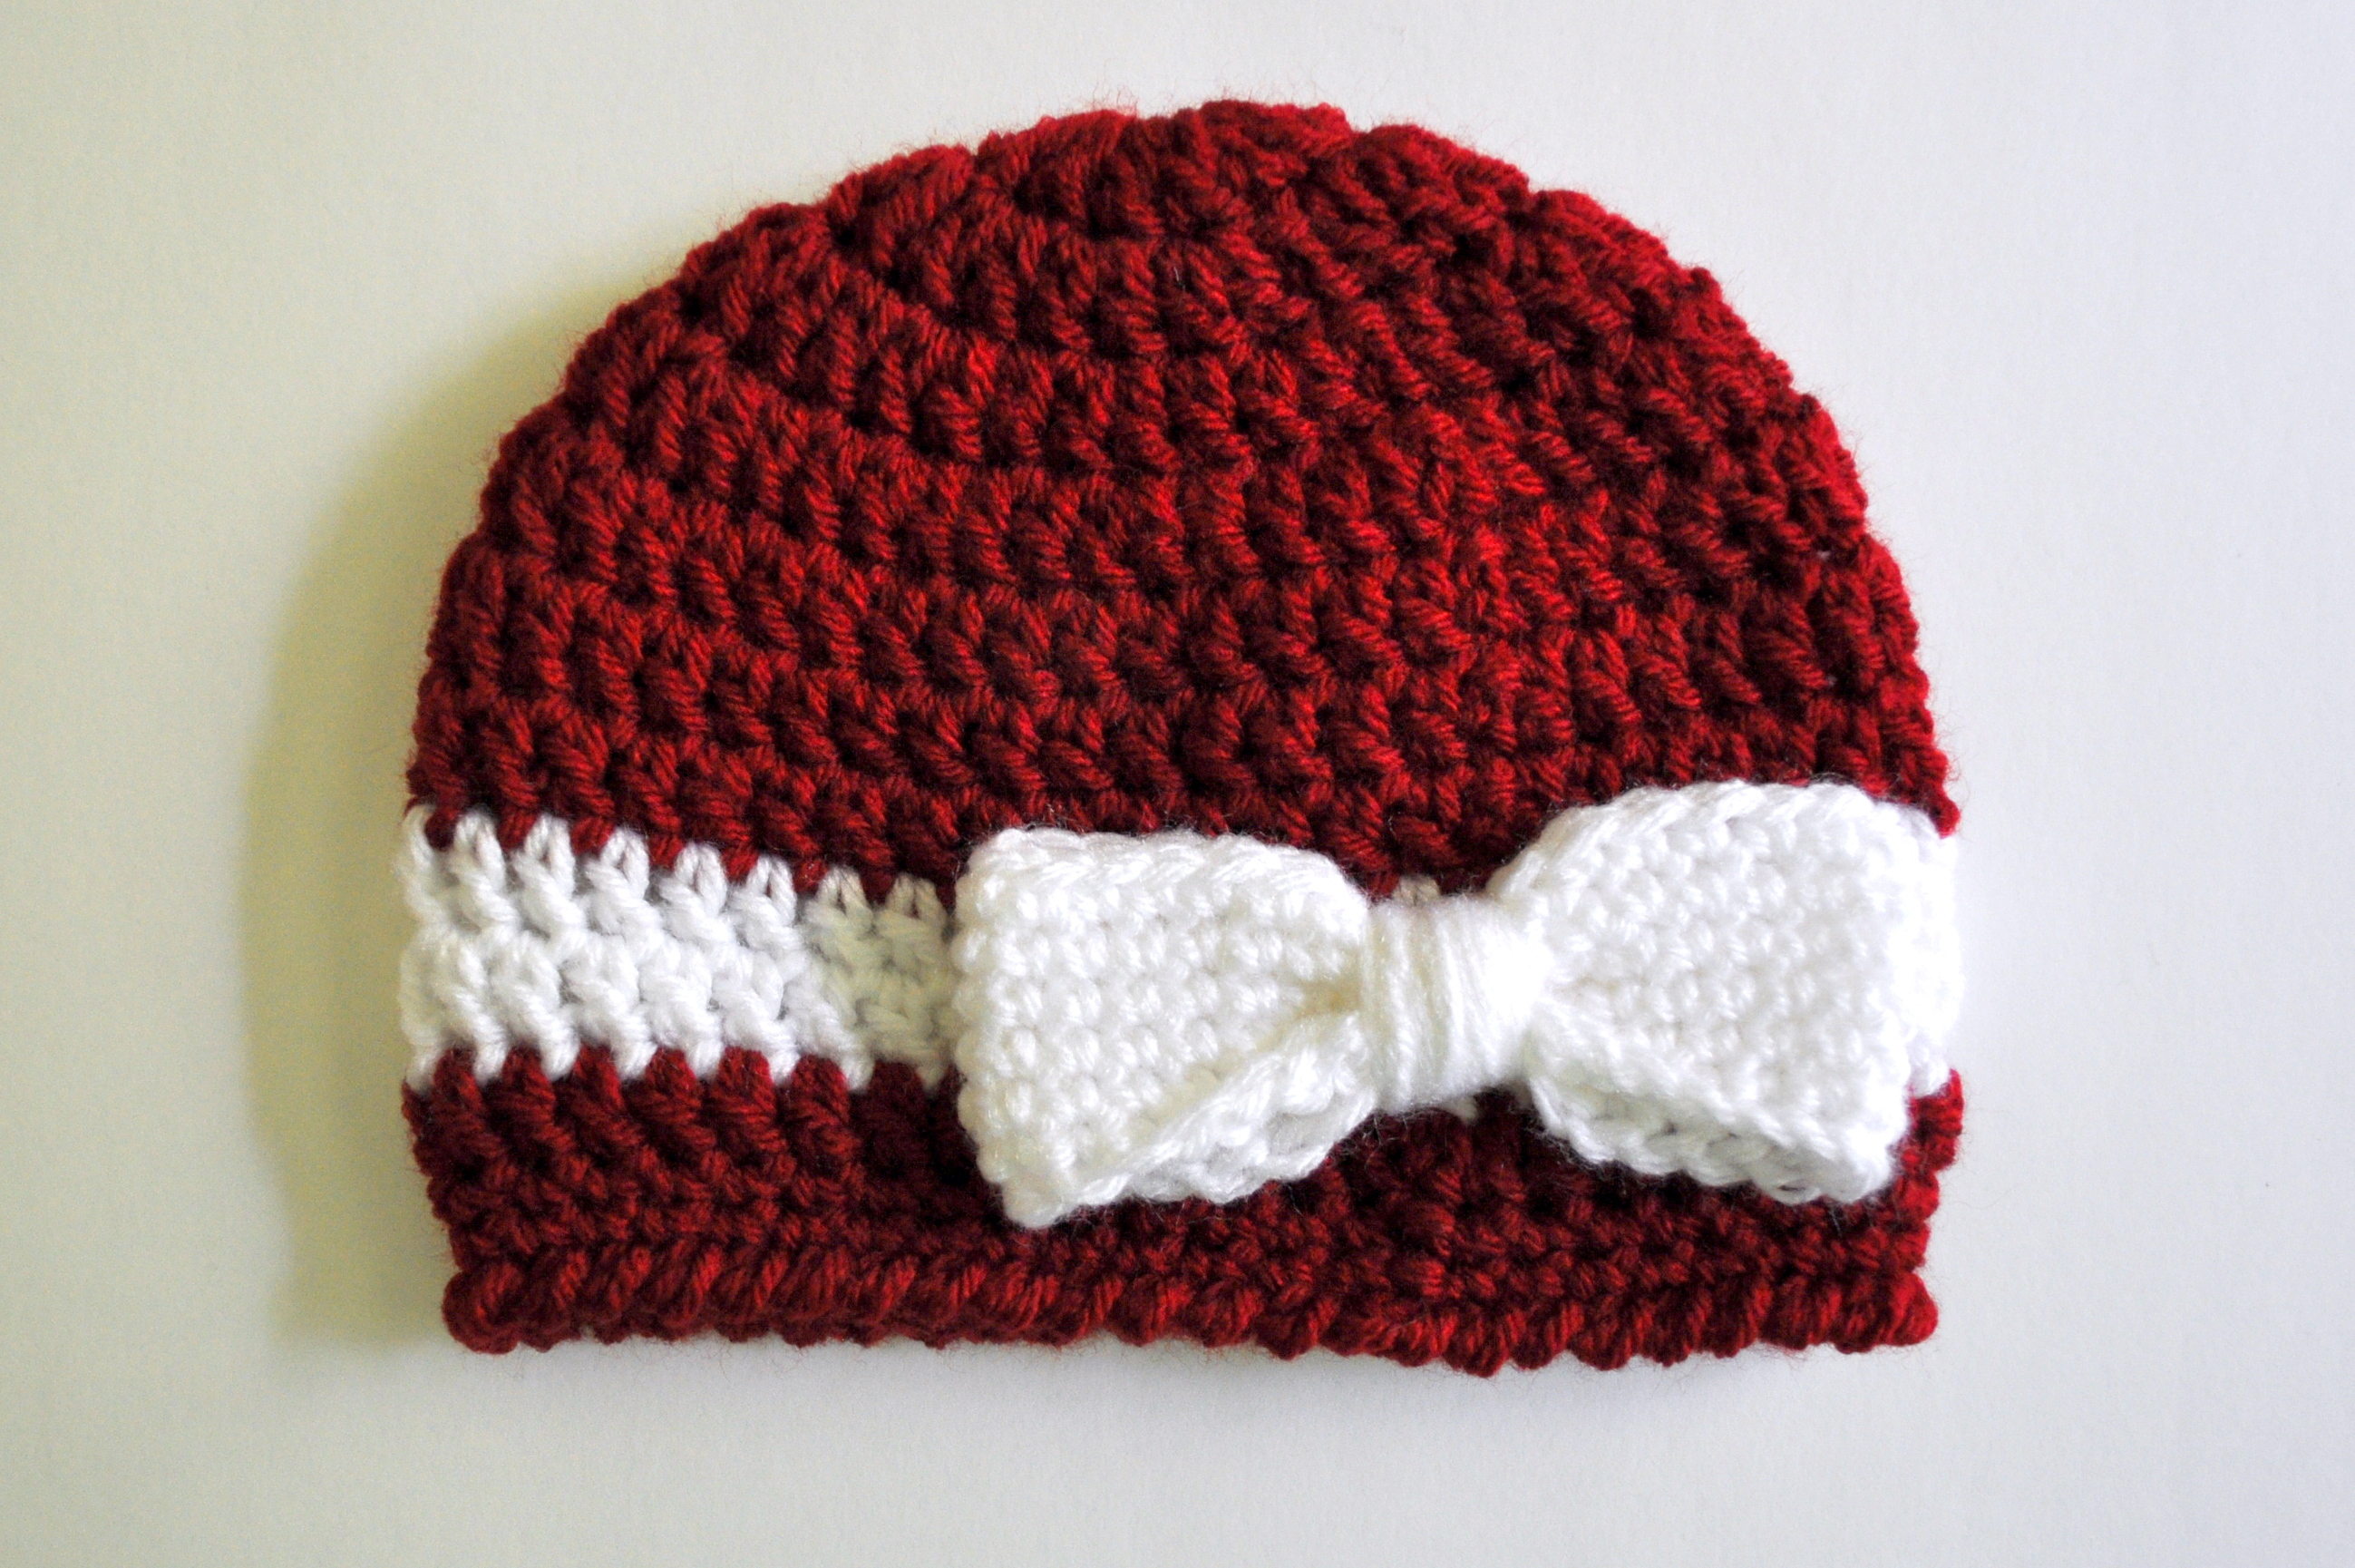 Crochet Beanie Hat Pattern For Babies : Free Pattern: Crochet Bow and Ribbon Baby Hat Classy Crochet